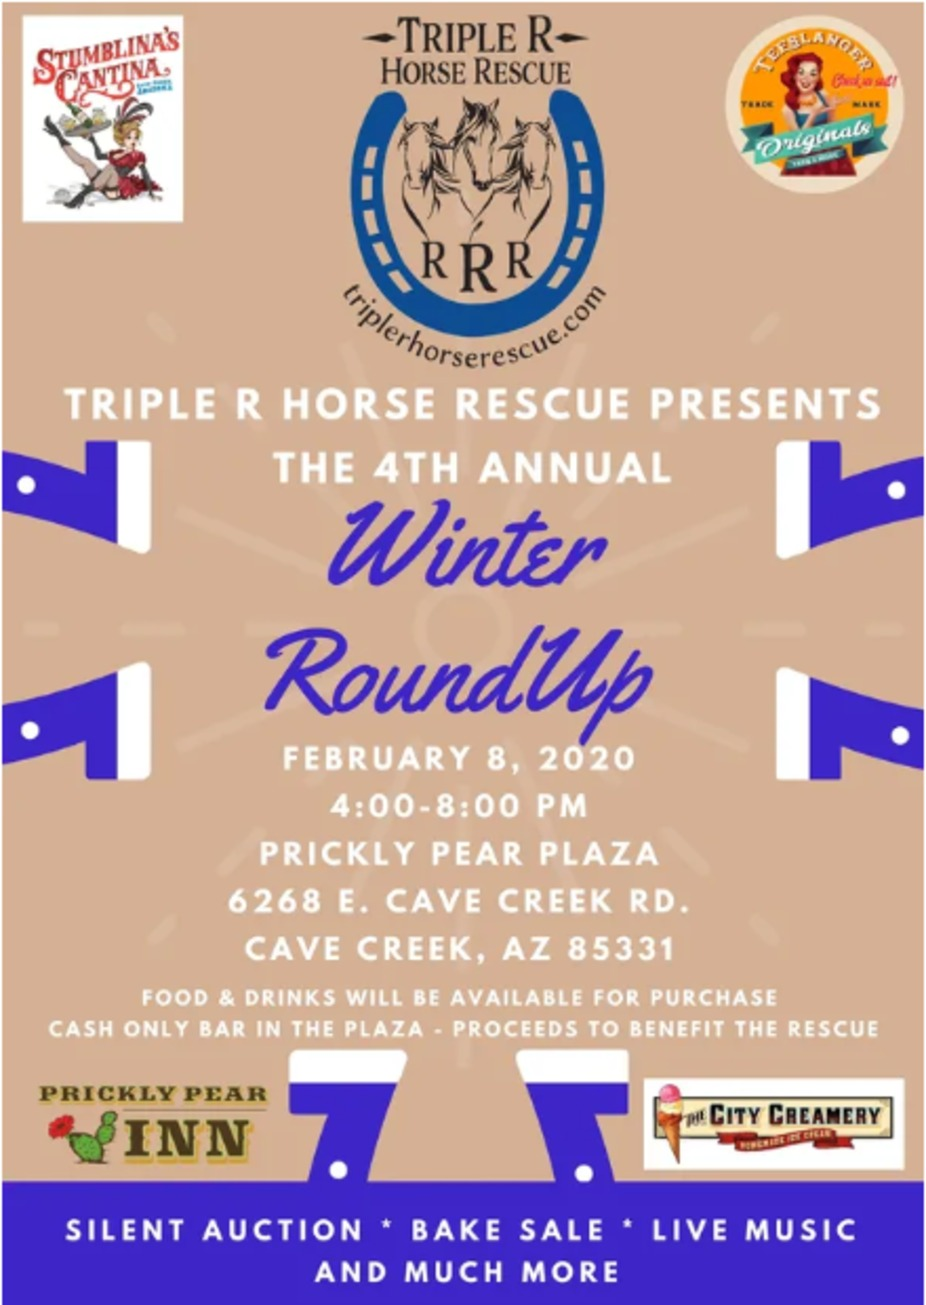 The 4th Annual Winter Roundup to benefit Triple R Horse Rescue event photo